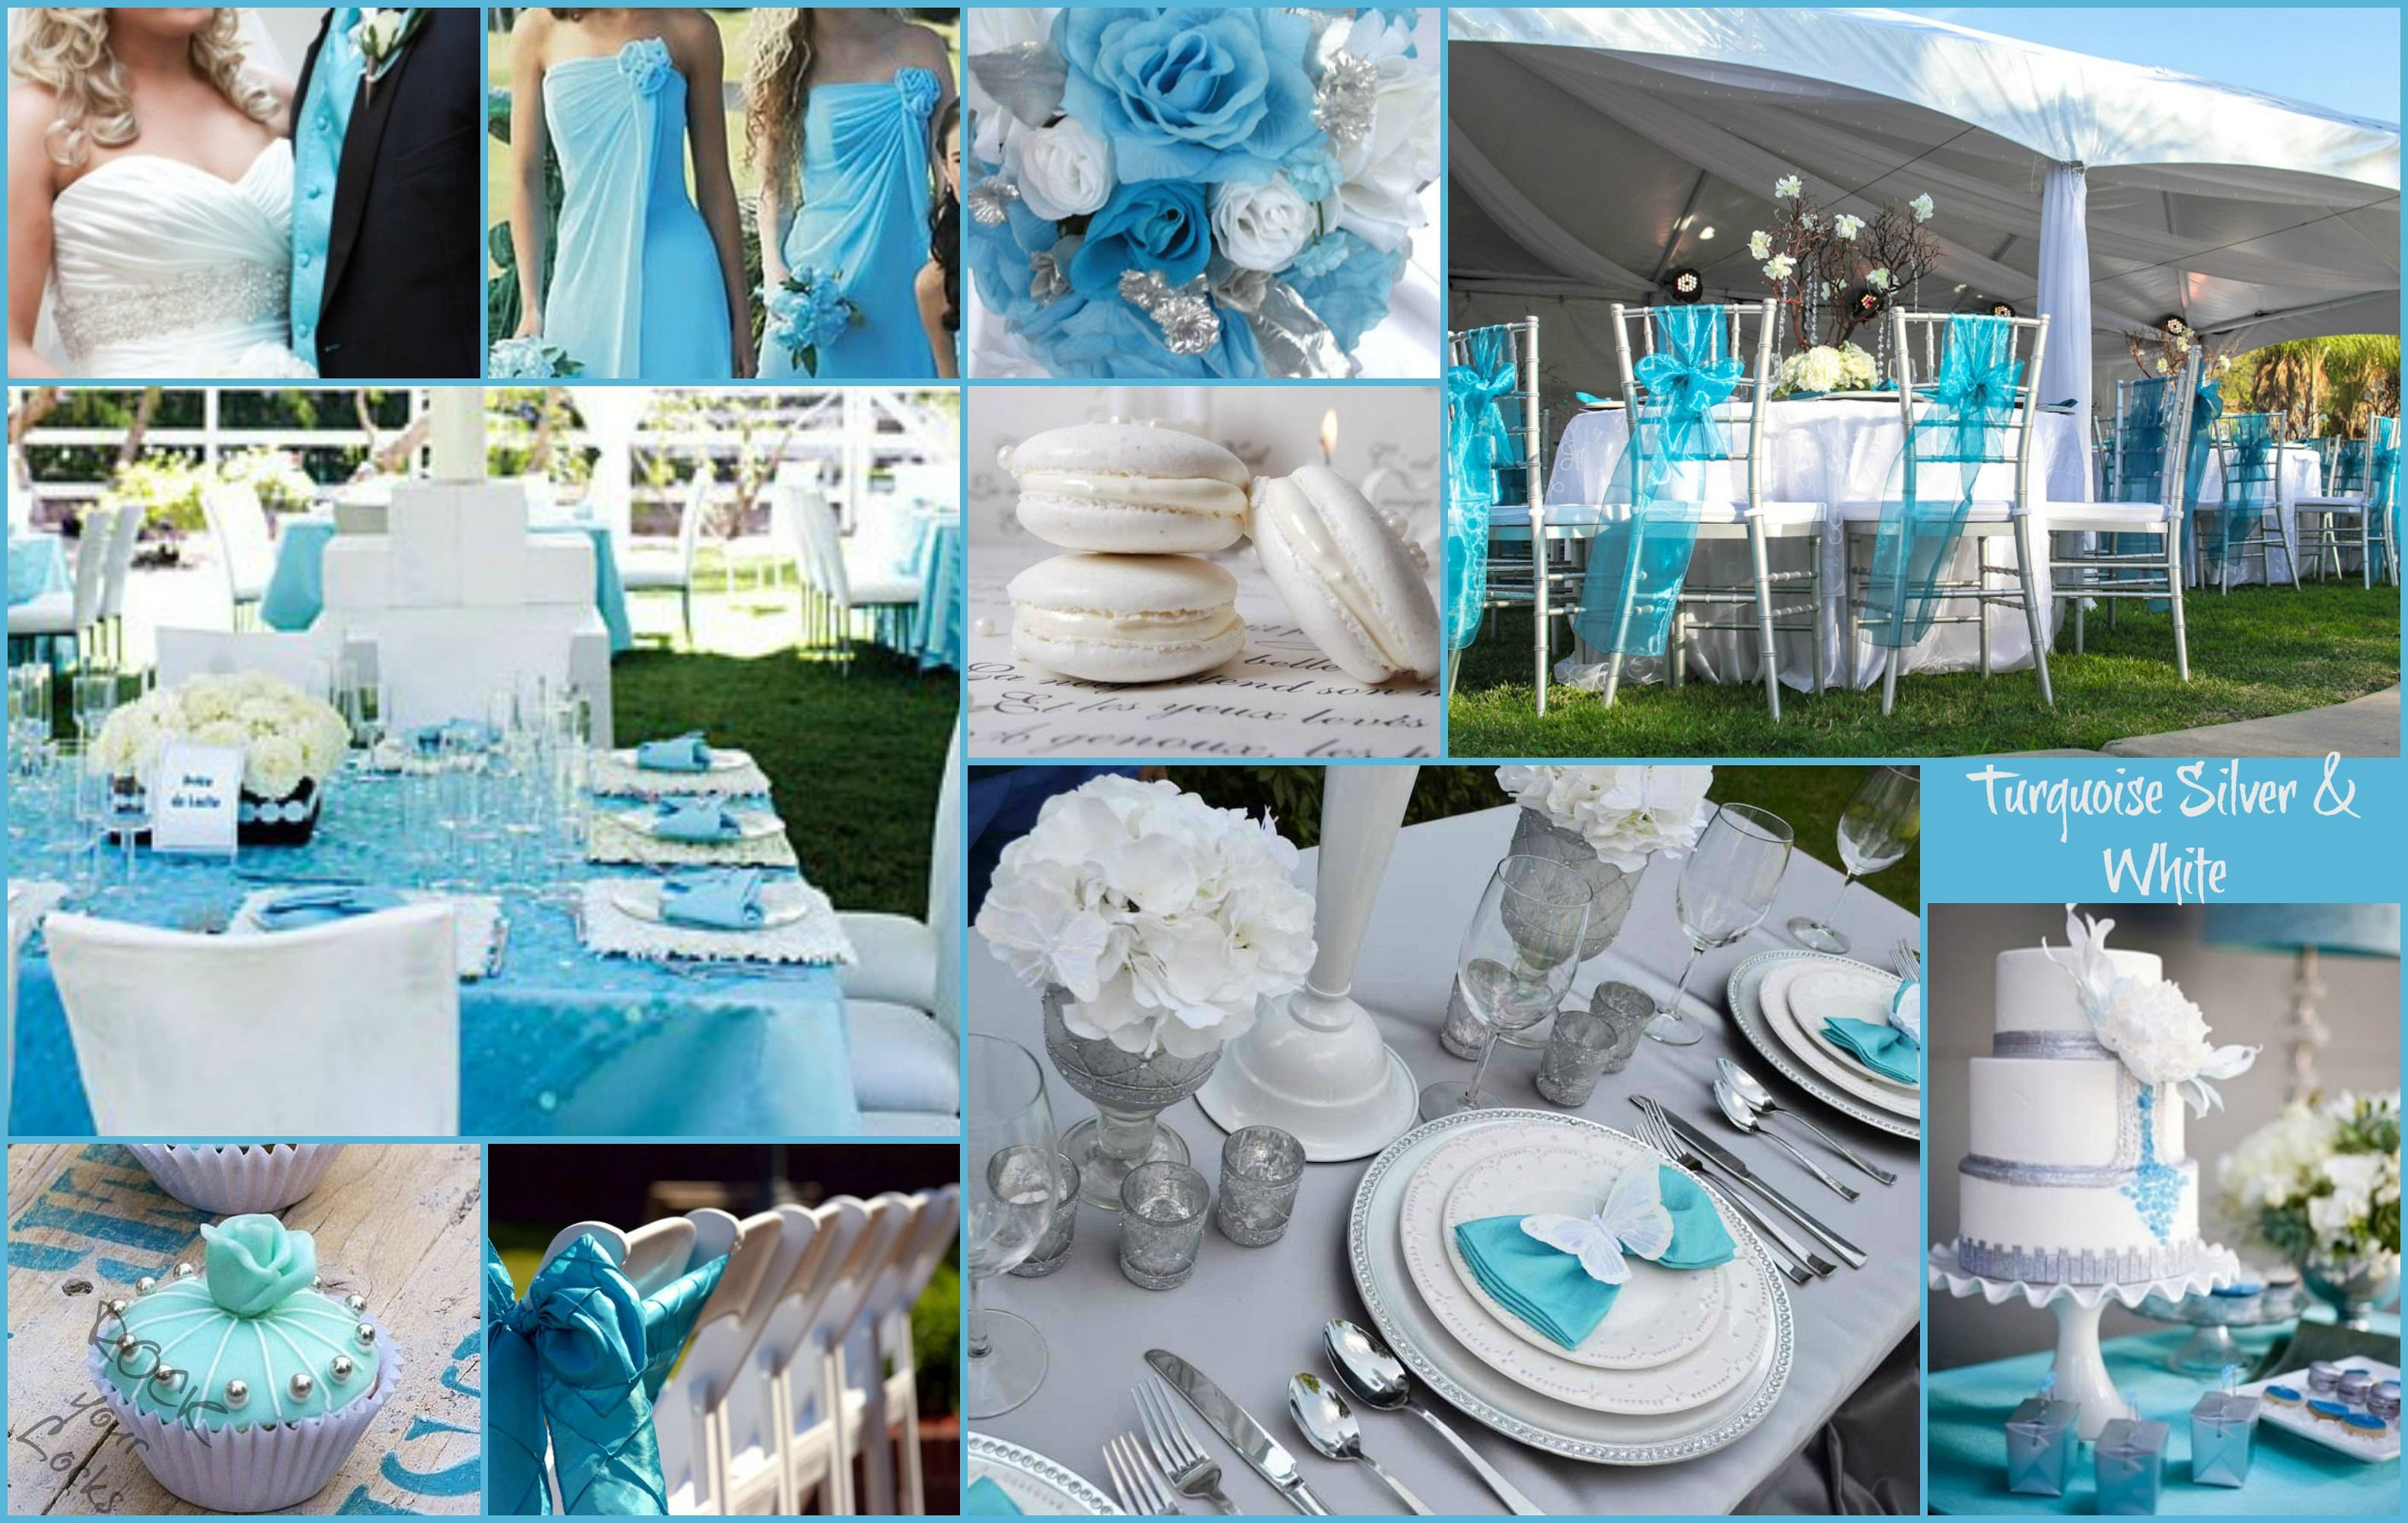 White And Silver Wedding Theme: TURQUOISE WHITE & SILVER WEDDING Inspiration